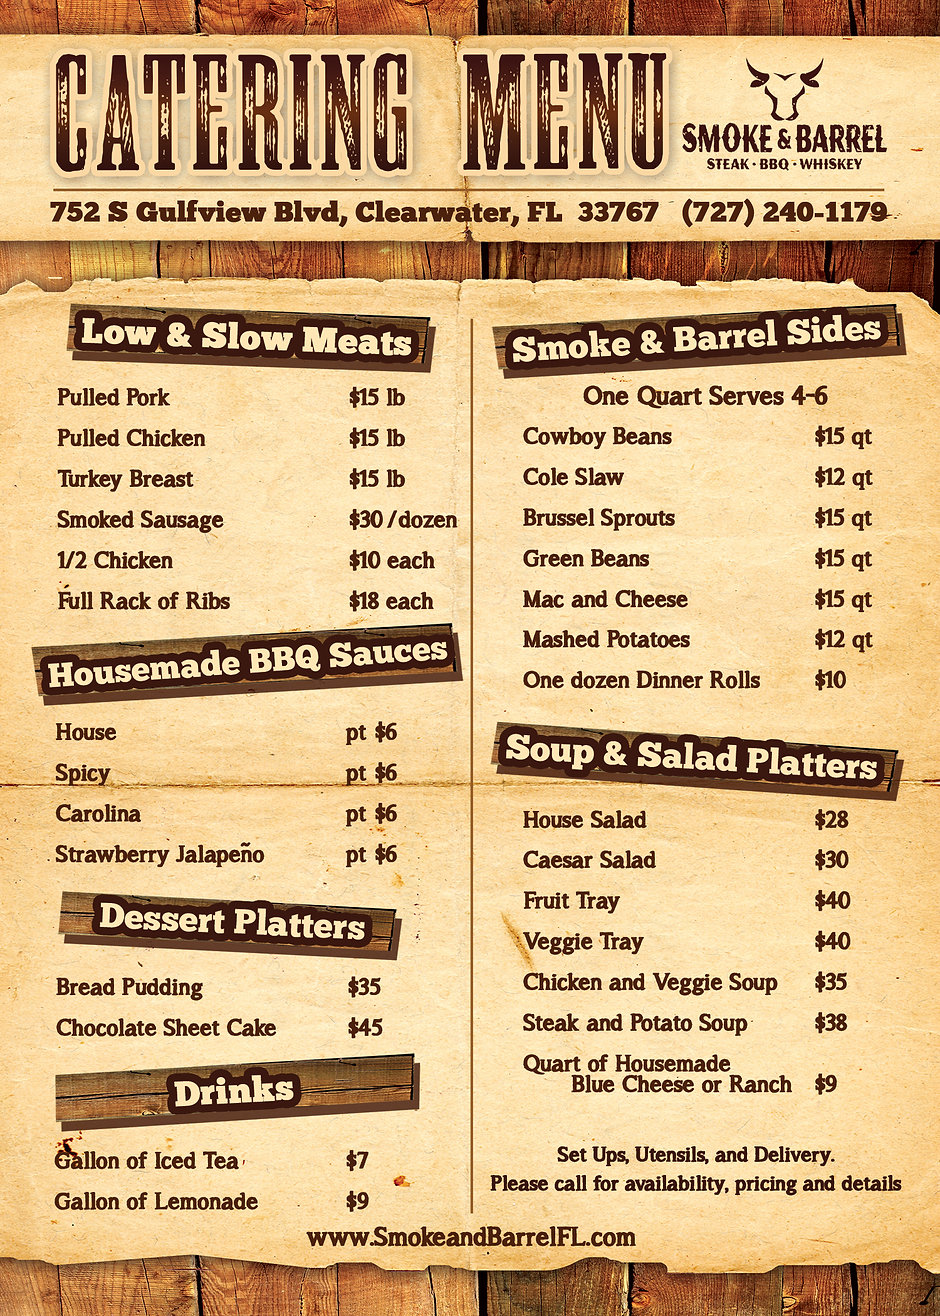 Smoke-&-Barrel-Catering-Menu-Final.jpg